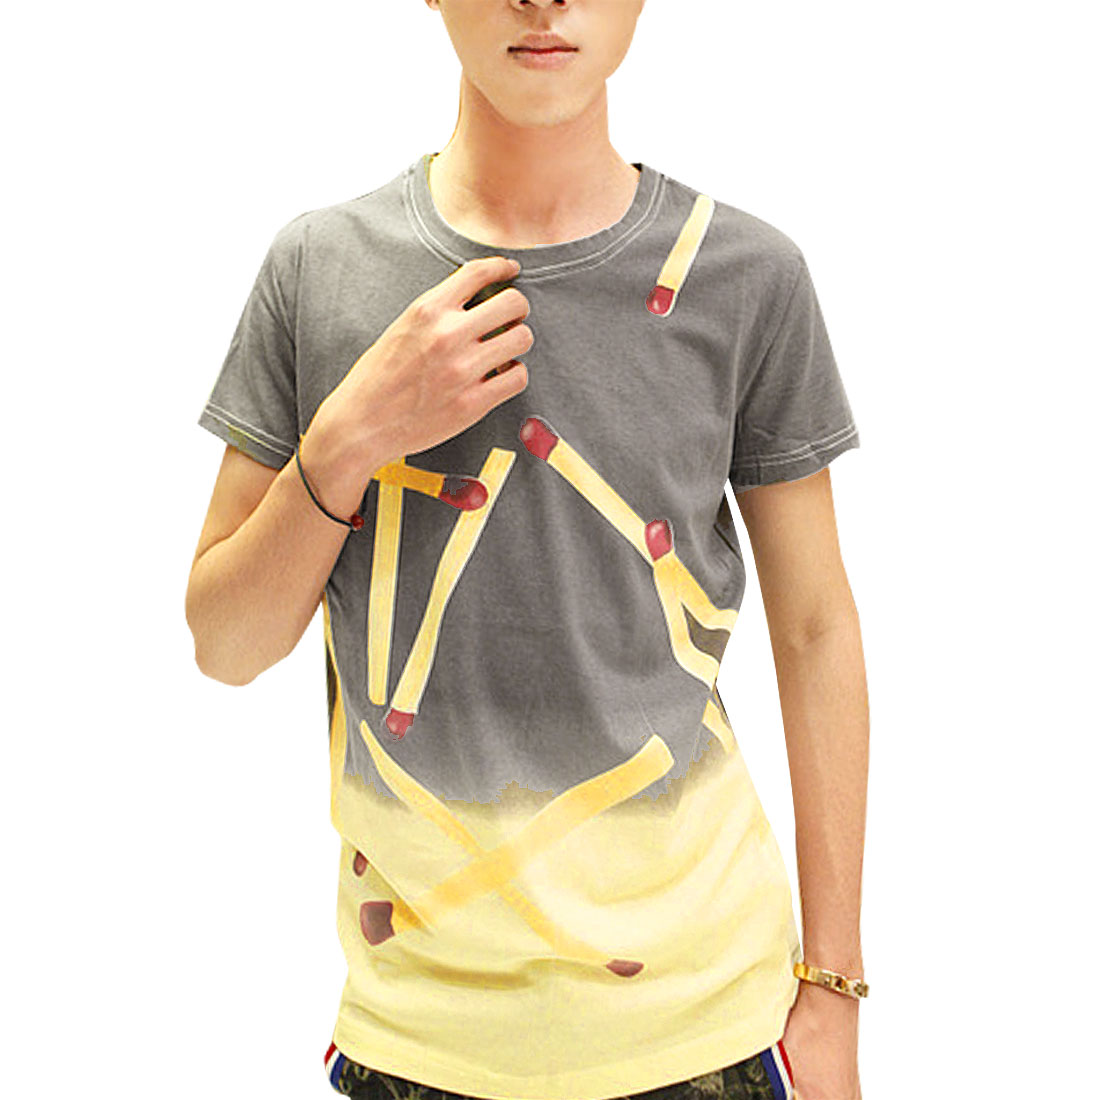 Summer Leisure Matchsticks Embellished T-Shirt Blouse Gray Yellow M for Men